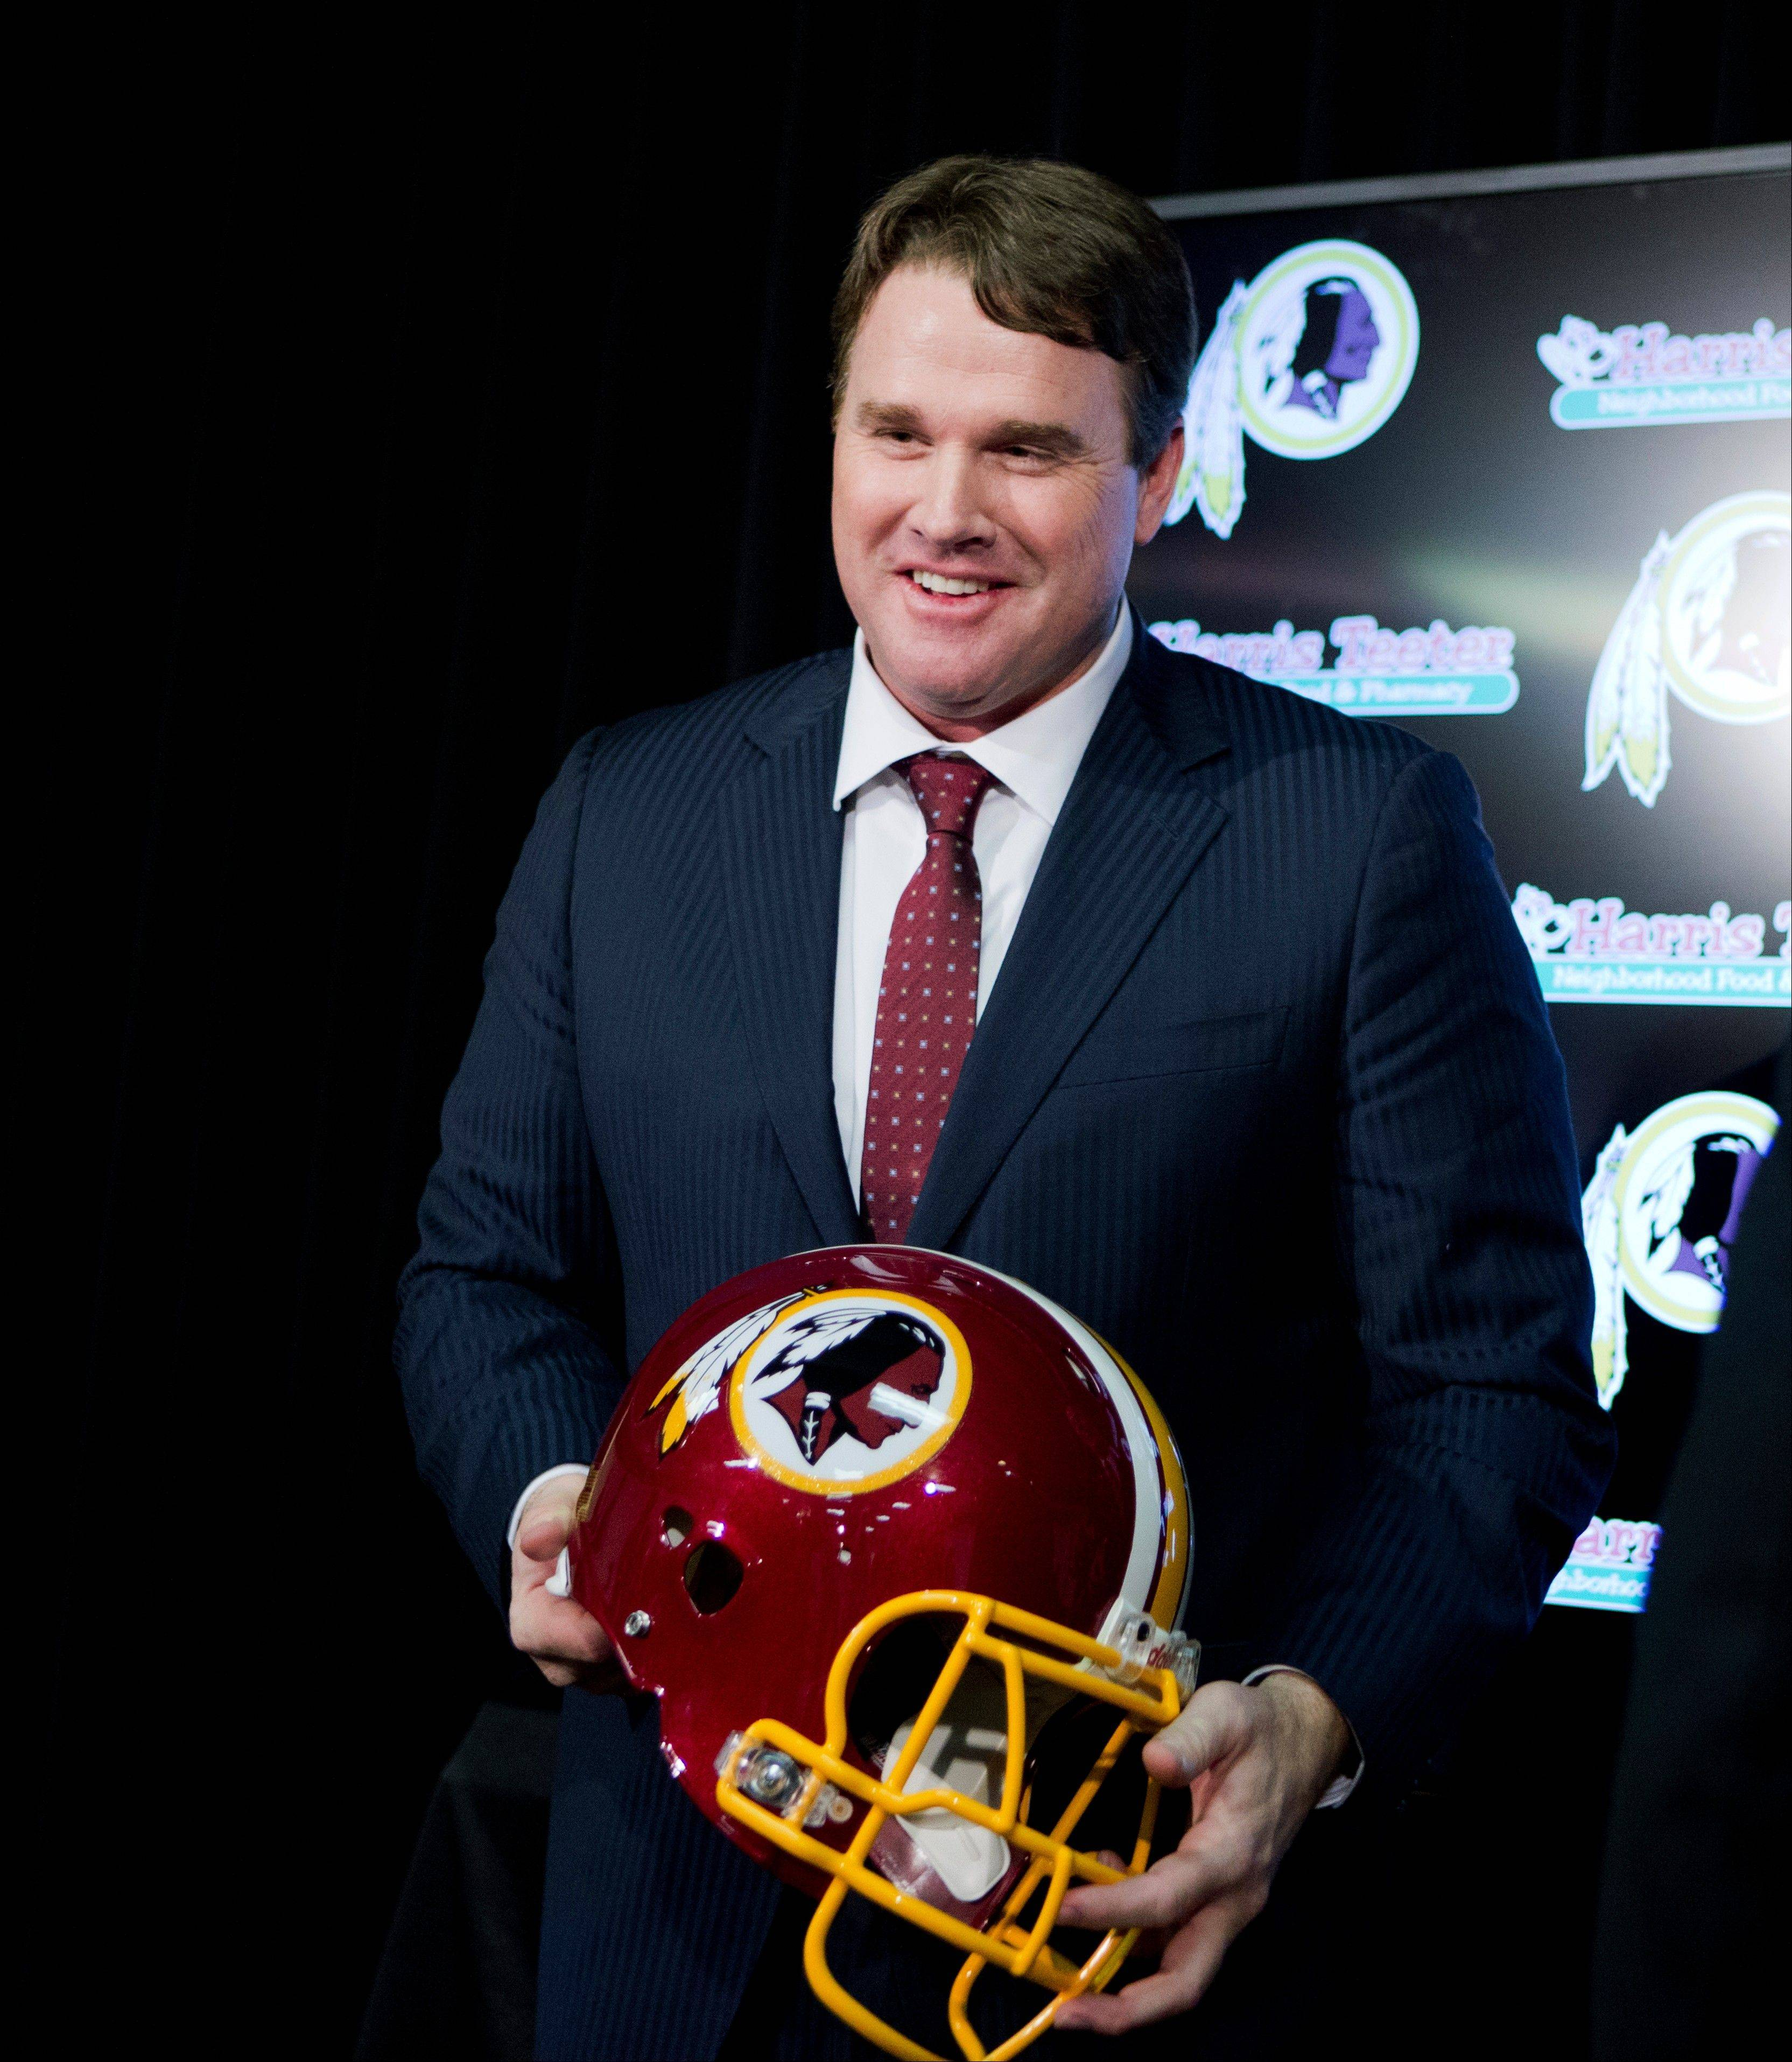 New Washington Redskins head coach Jay Gruden, holds a Redskins helmet at the Redskins Park in Ashburn, Va., Thursday, Jan. 9, 2014. Jay Gruden was introduced as the new Washington Redskins head coach, replacing Mike Shanahan and becoming the teamís eighth head coach since Daniel Snyder purchased the franchise in 1999.